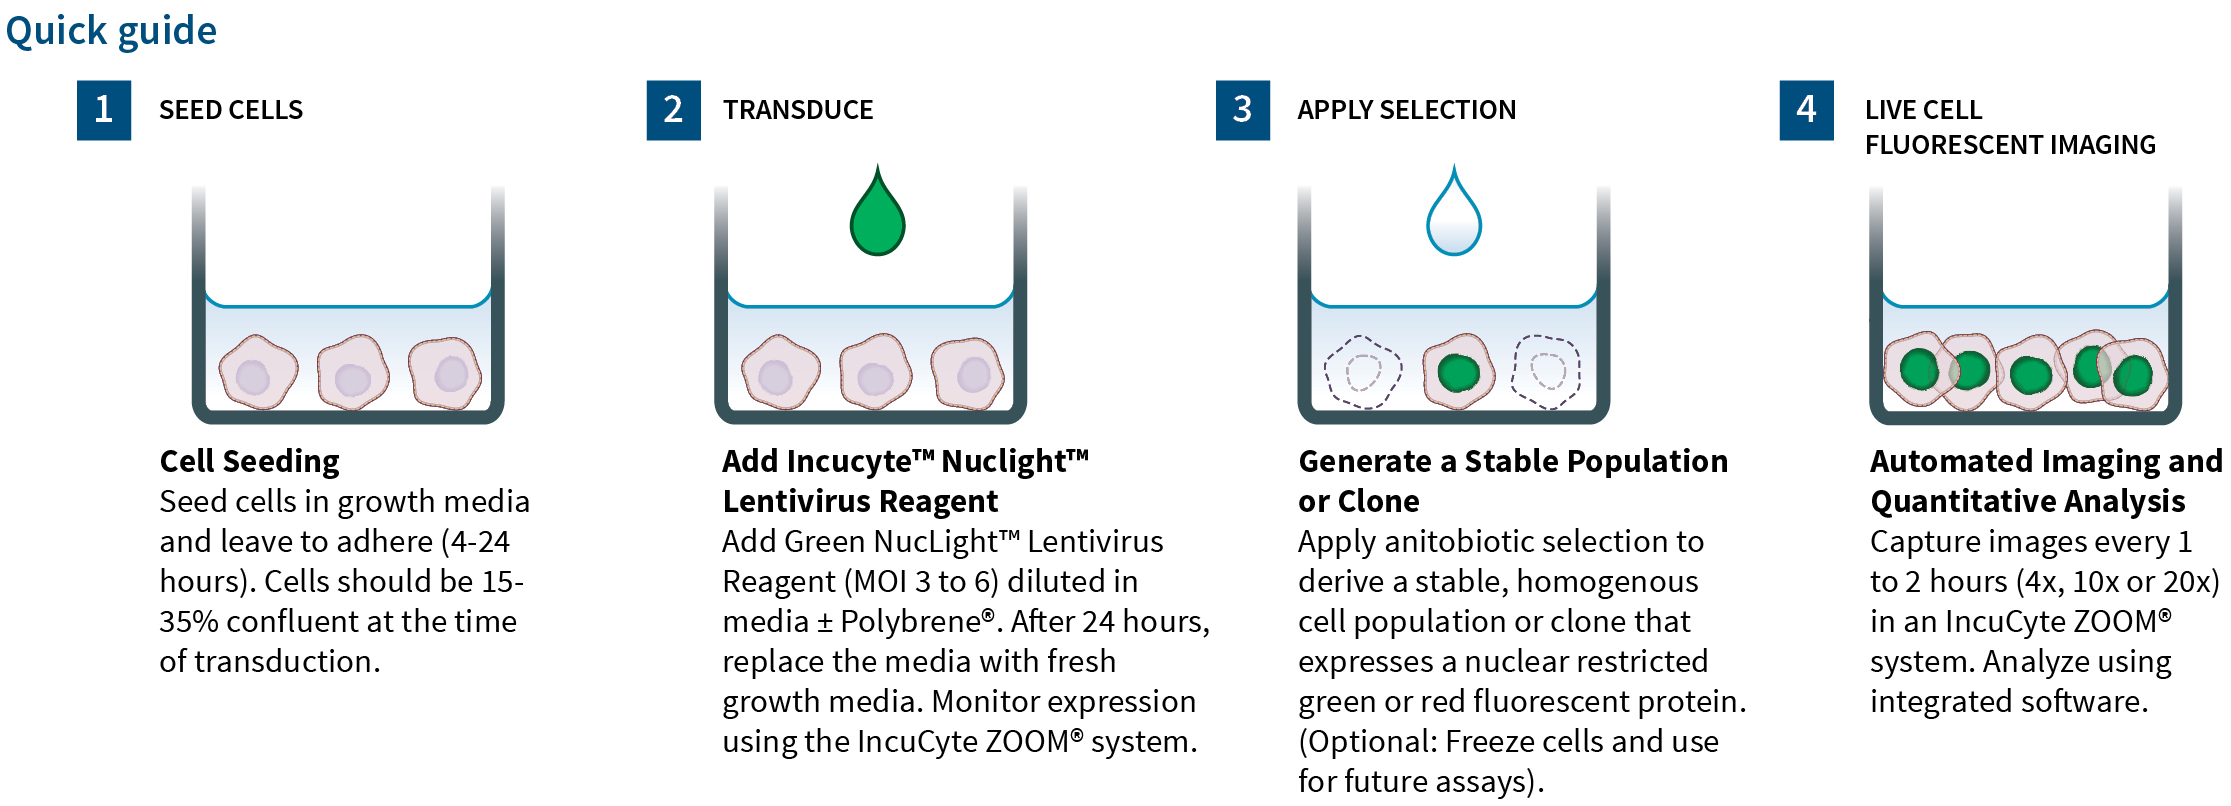 NucLight Lentivirus Reagents